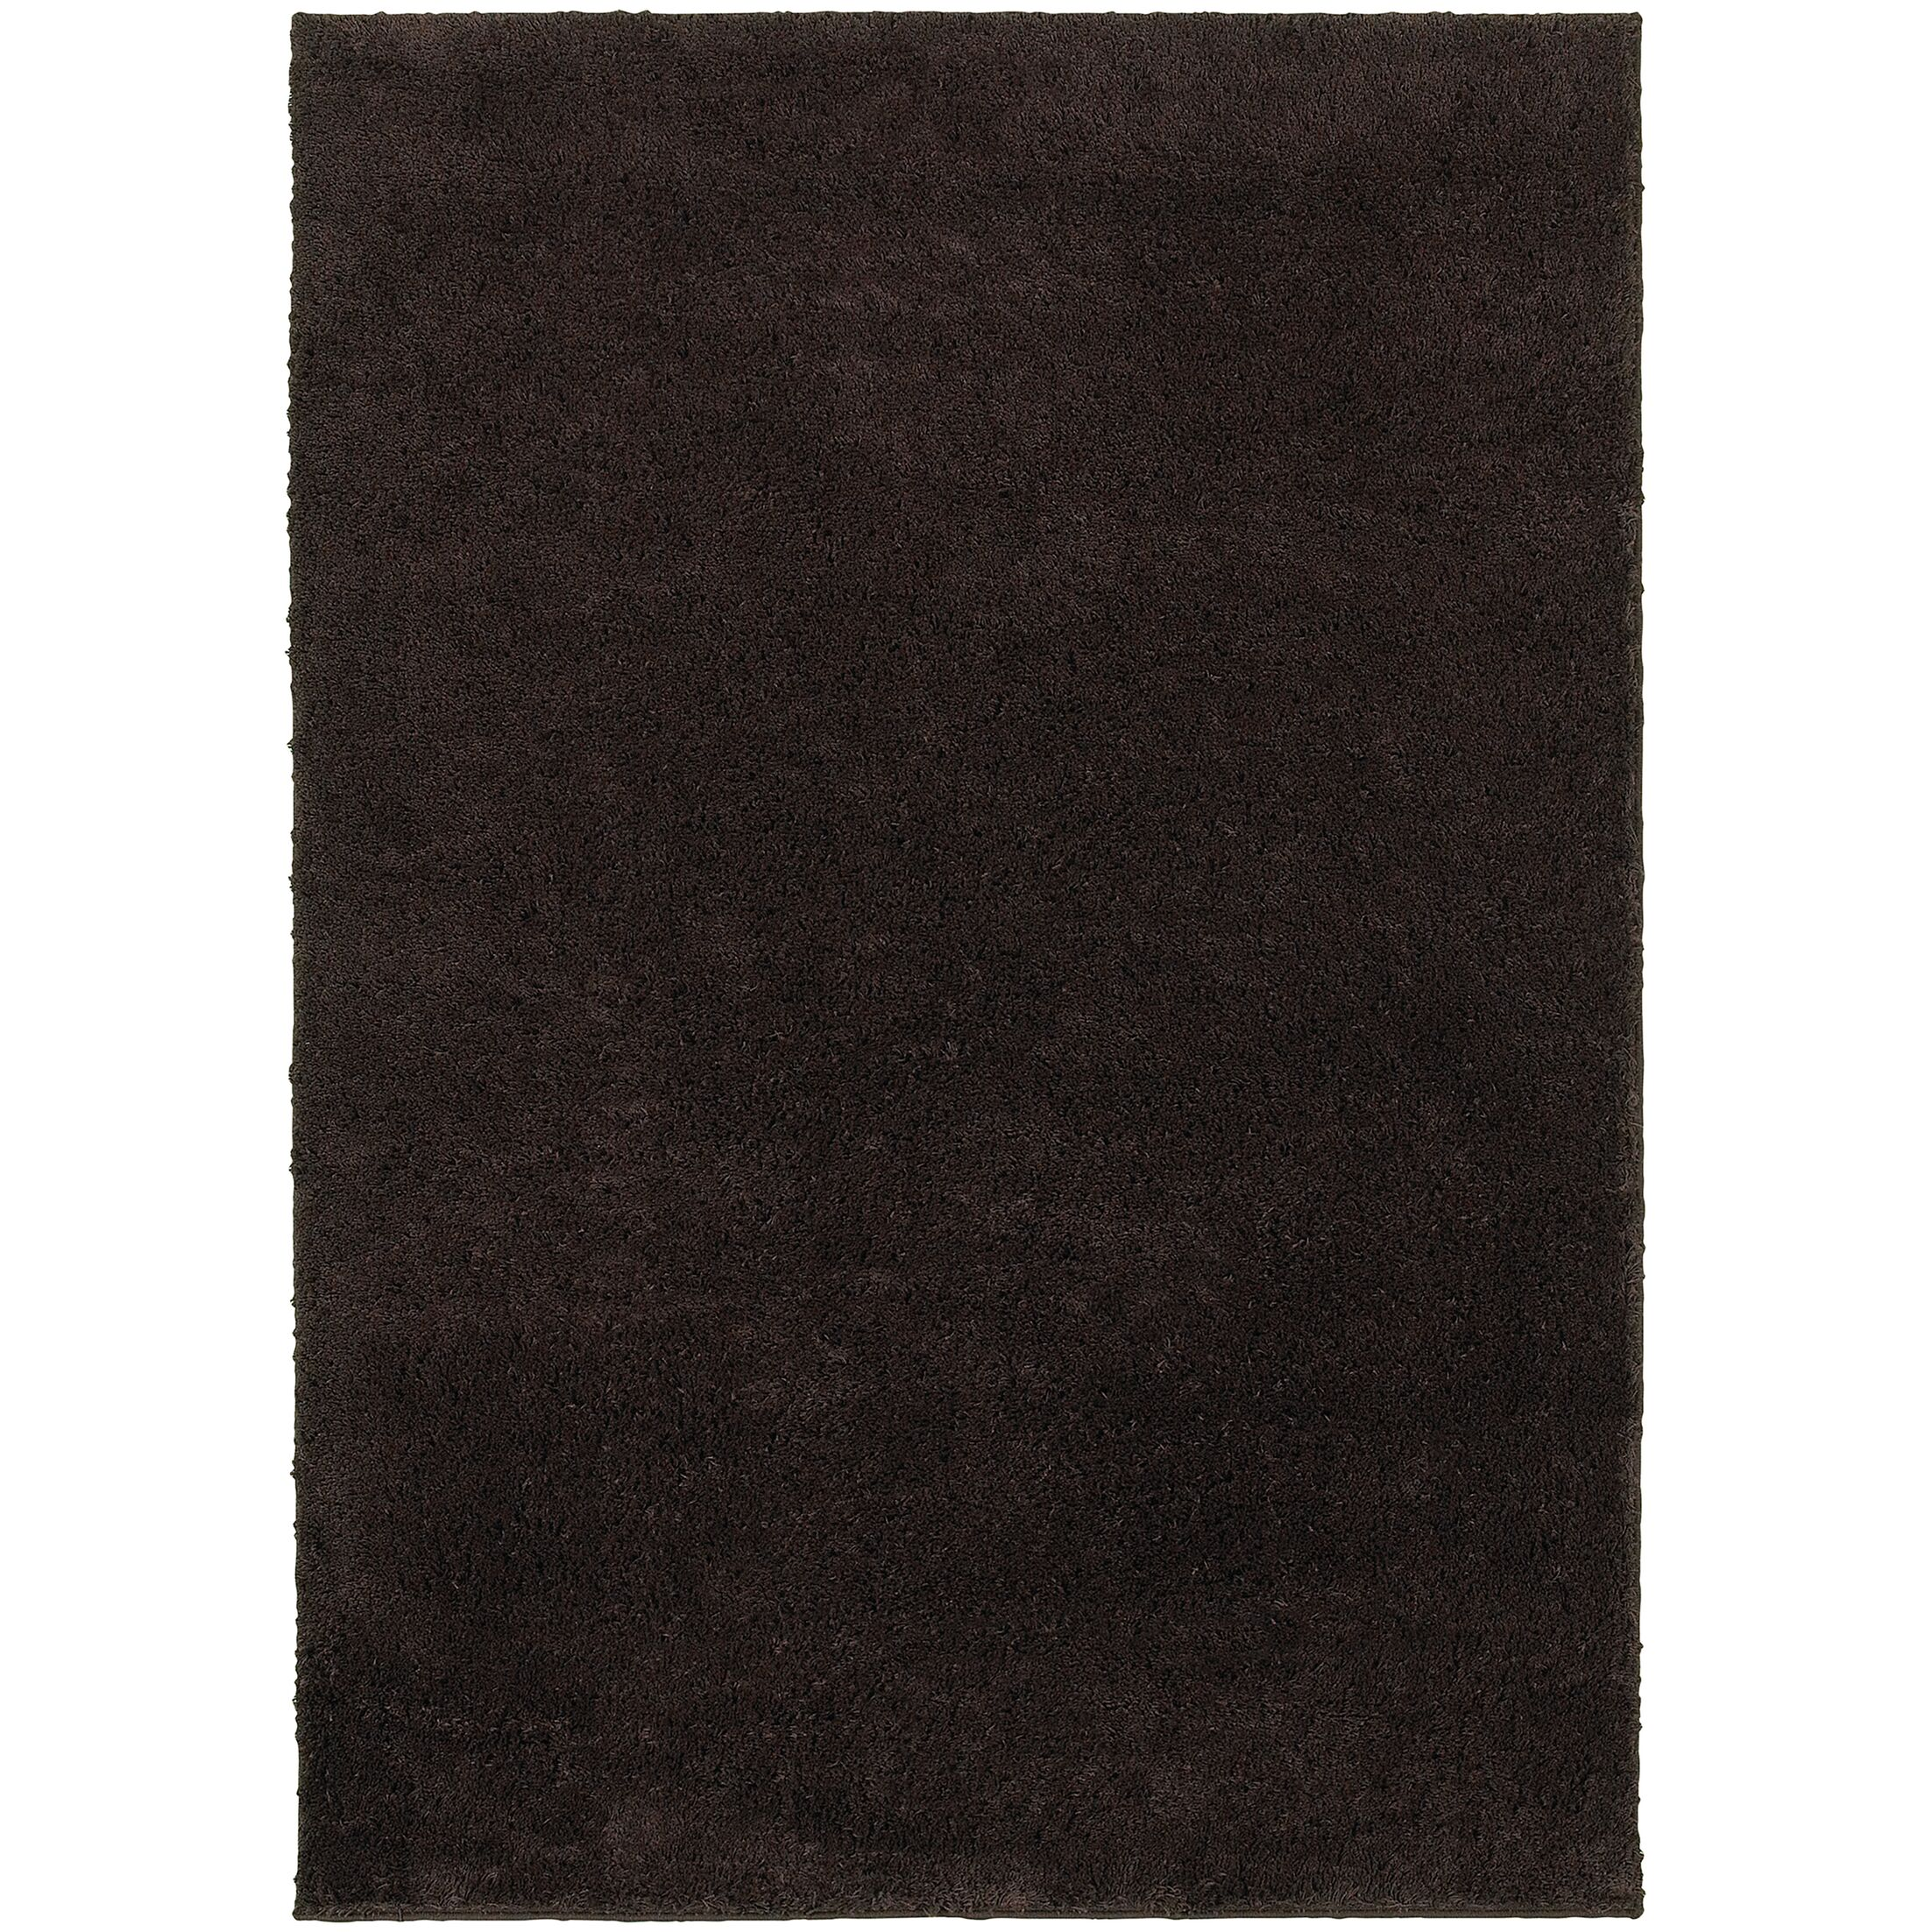 Hanson Brown Area Rug Rug Size: Rectangle 5'3